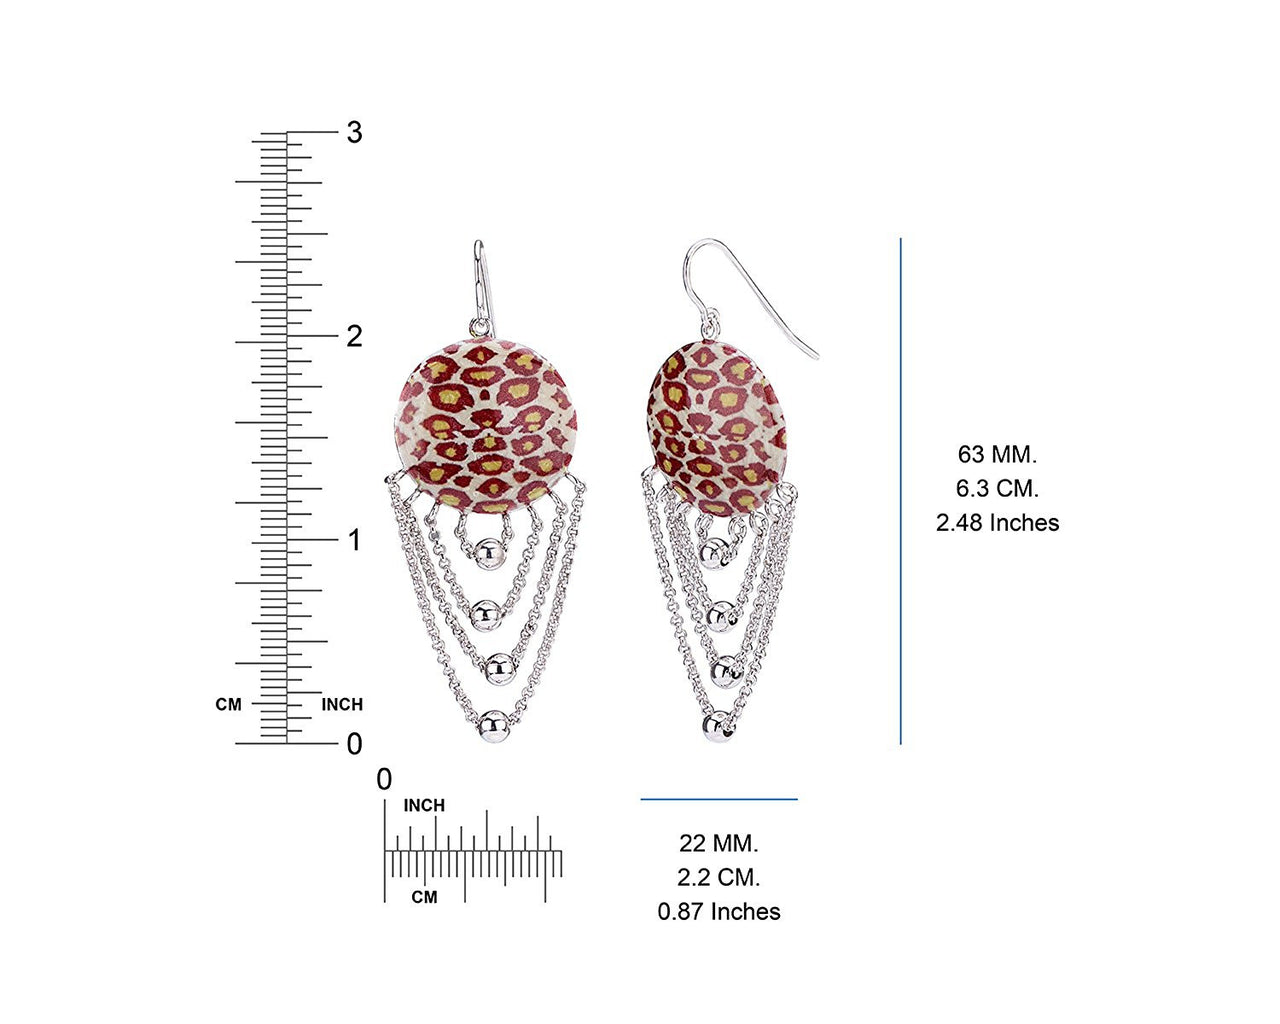 Leopard Drop Earring Dimensions